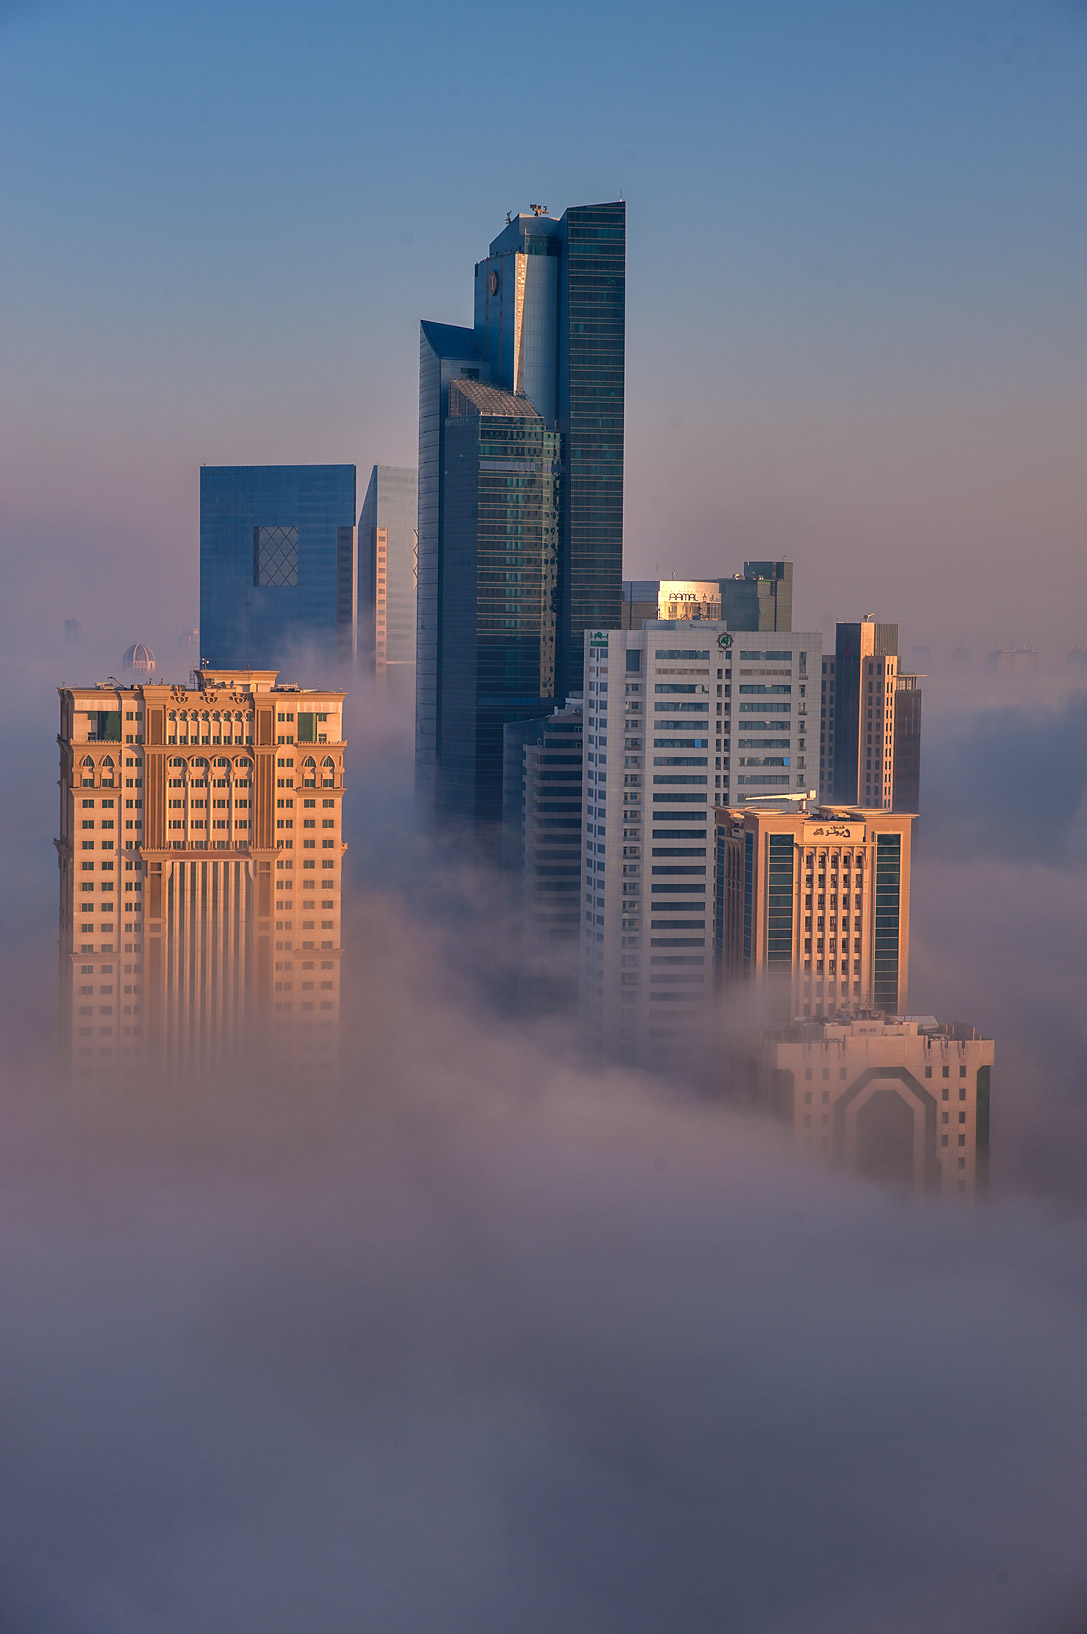 Morning fog engulfed Silhouette Tower from a...Dareen Tower in West Bay. Doha, Qatar